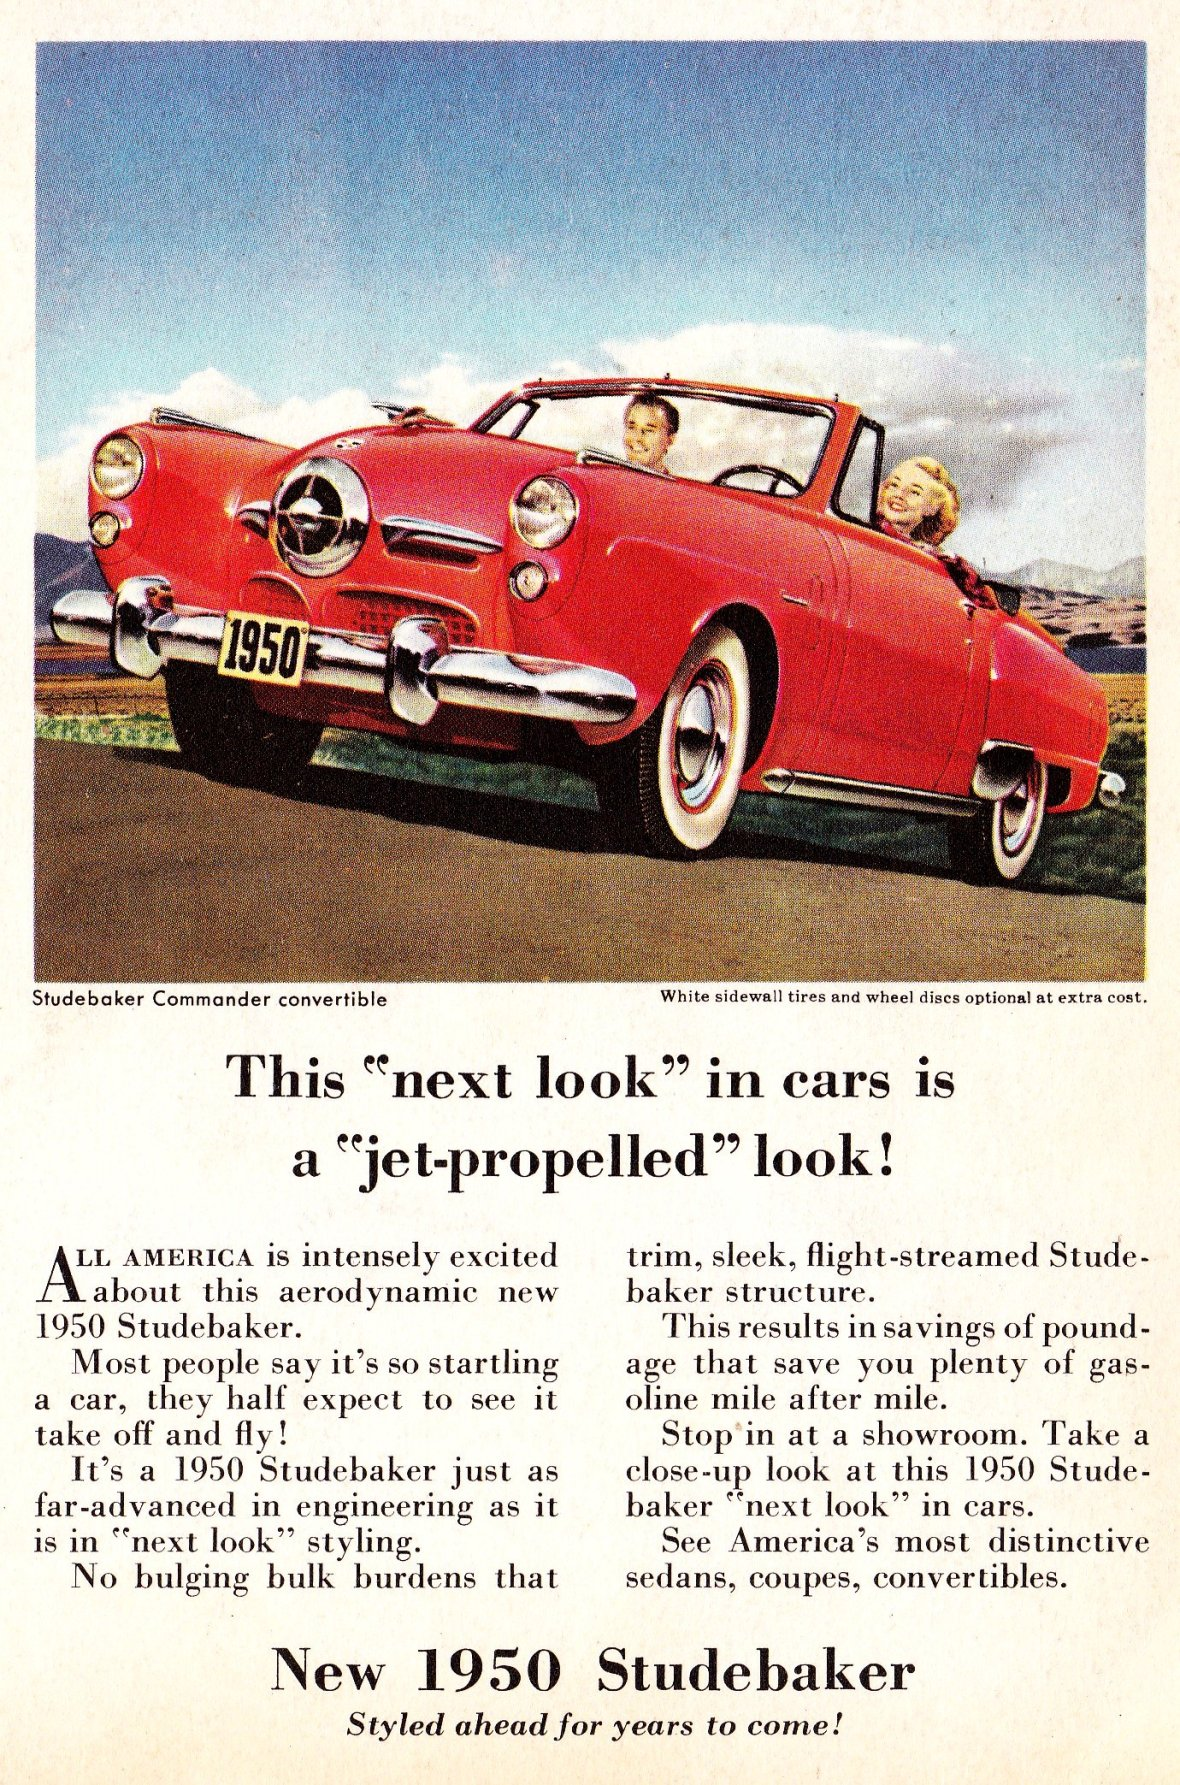 1950 Studebaker Commander Convertible - published in 'Coronet' - January 1950